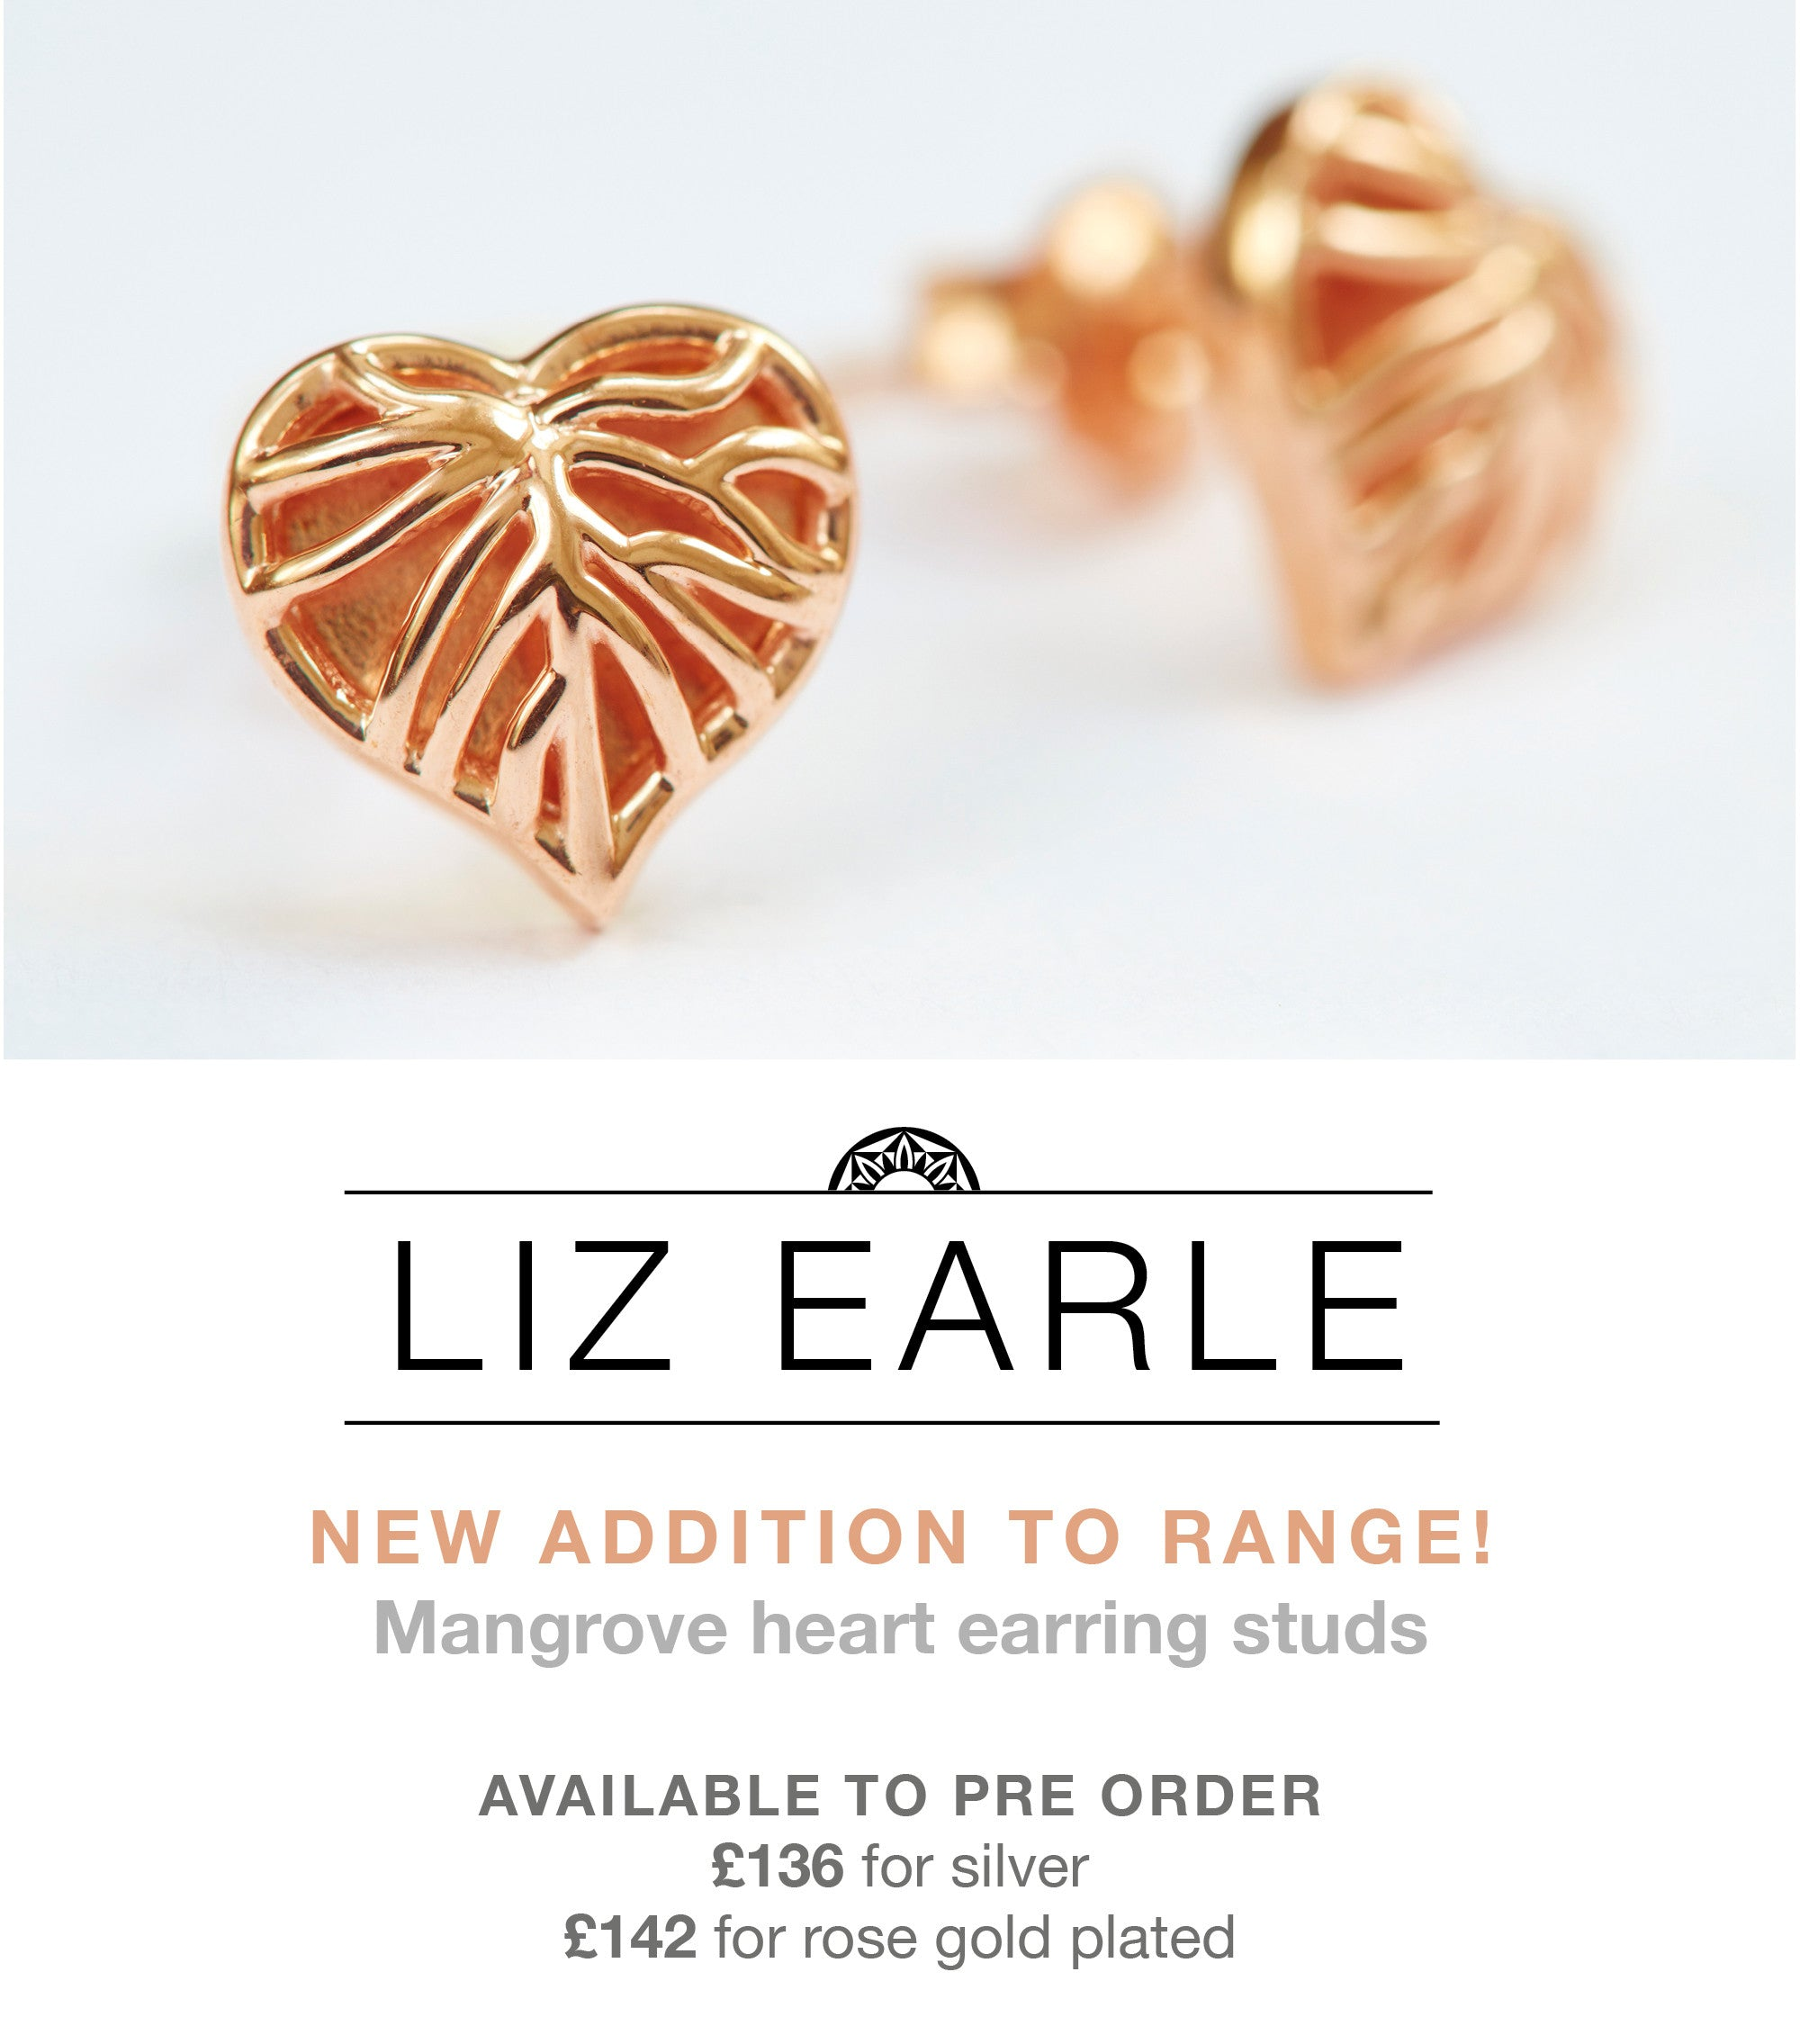 Liz Earle: New addition